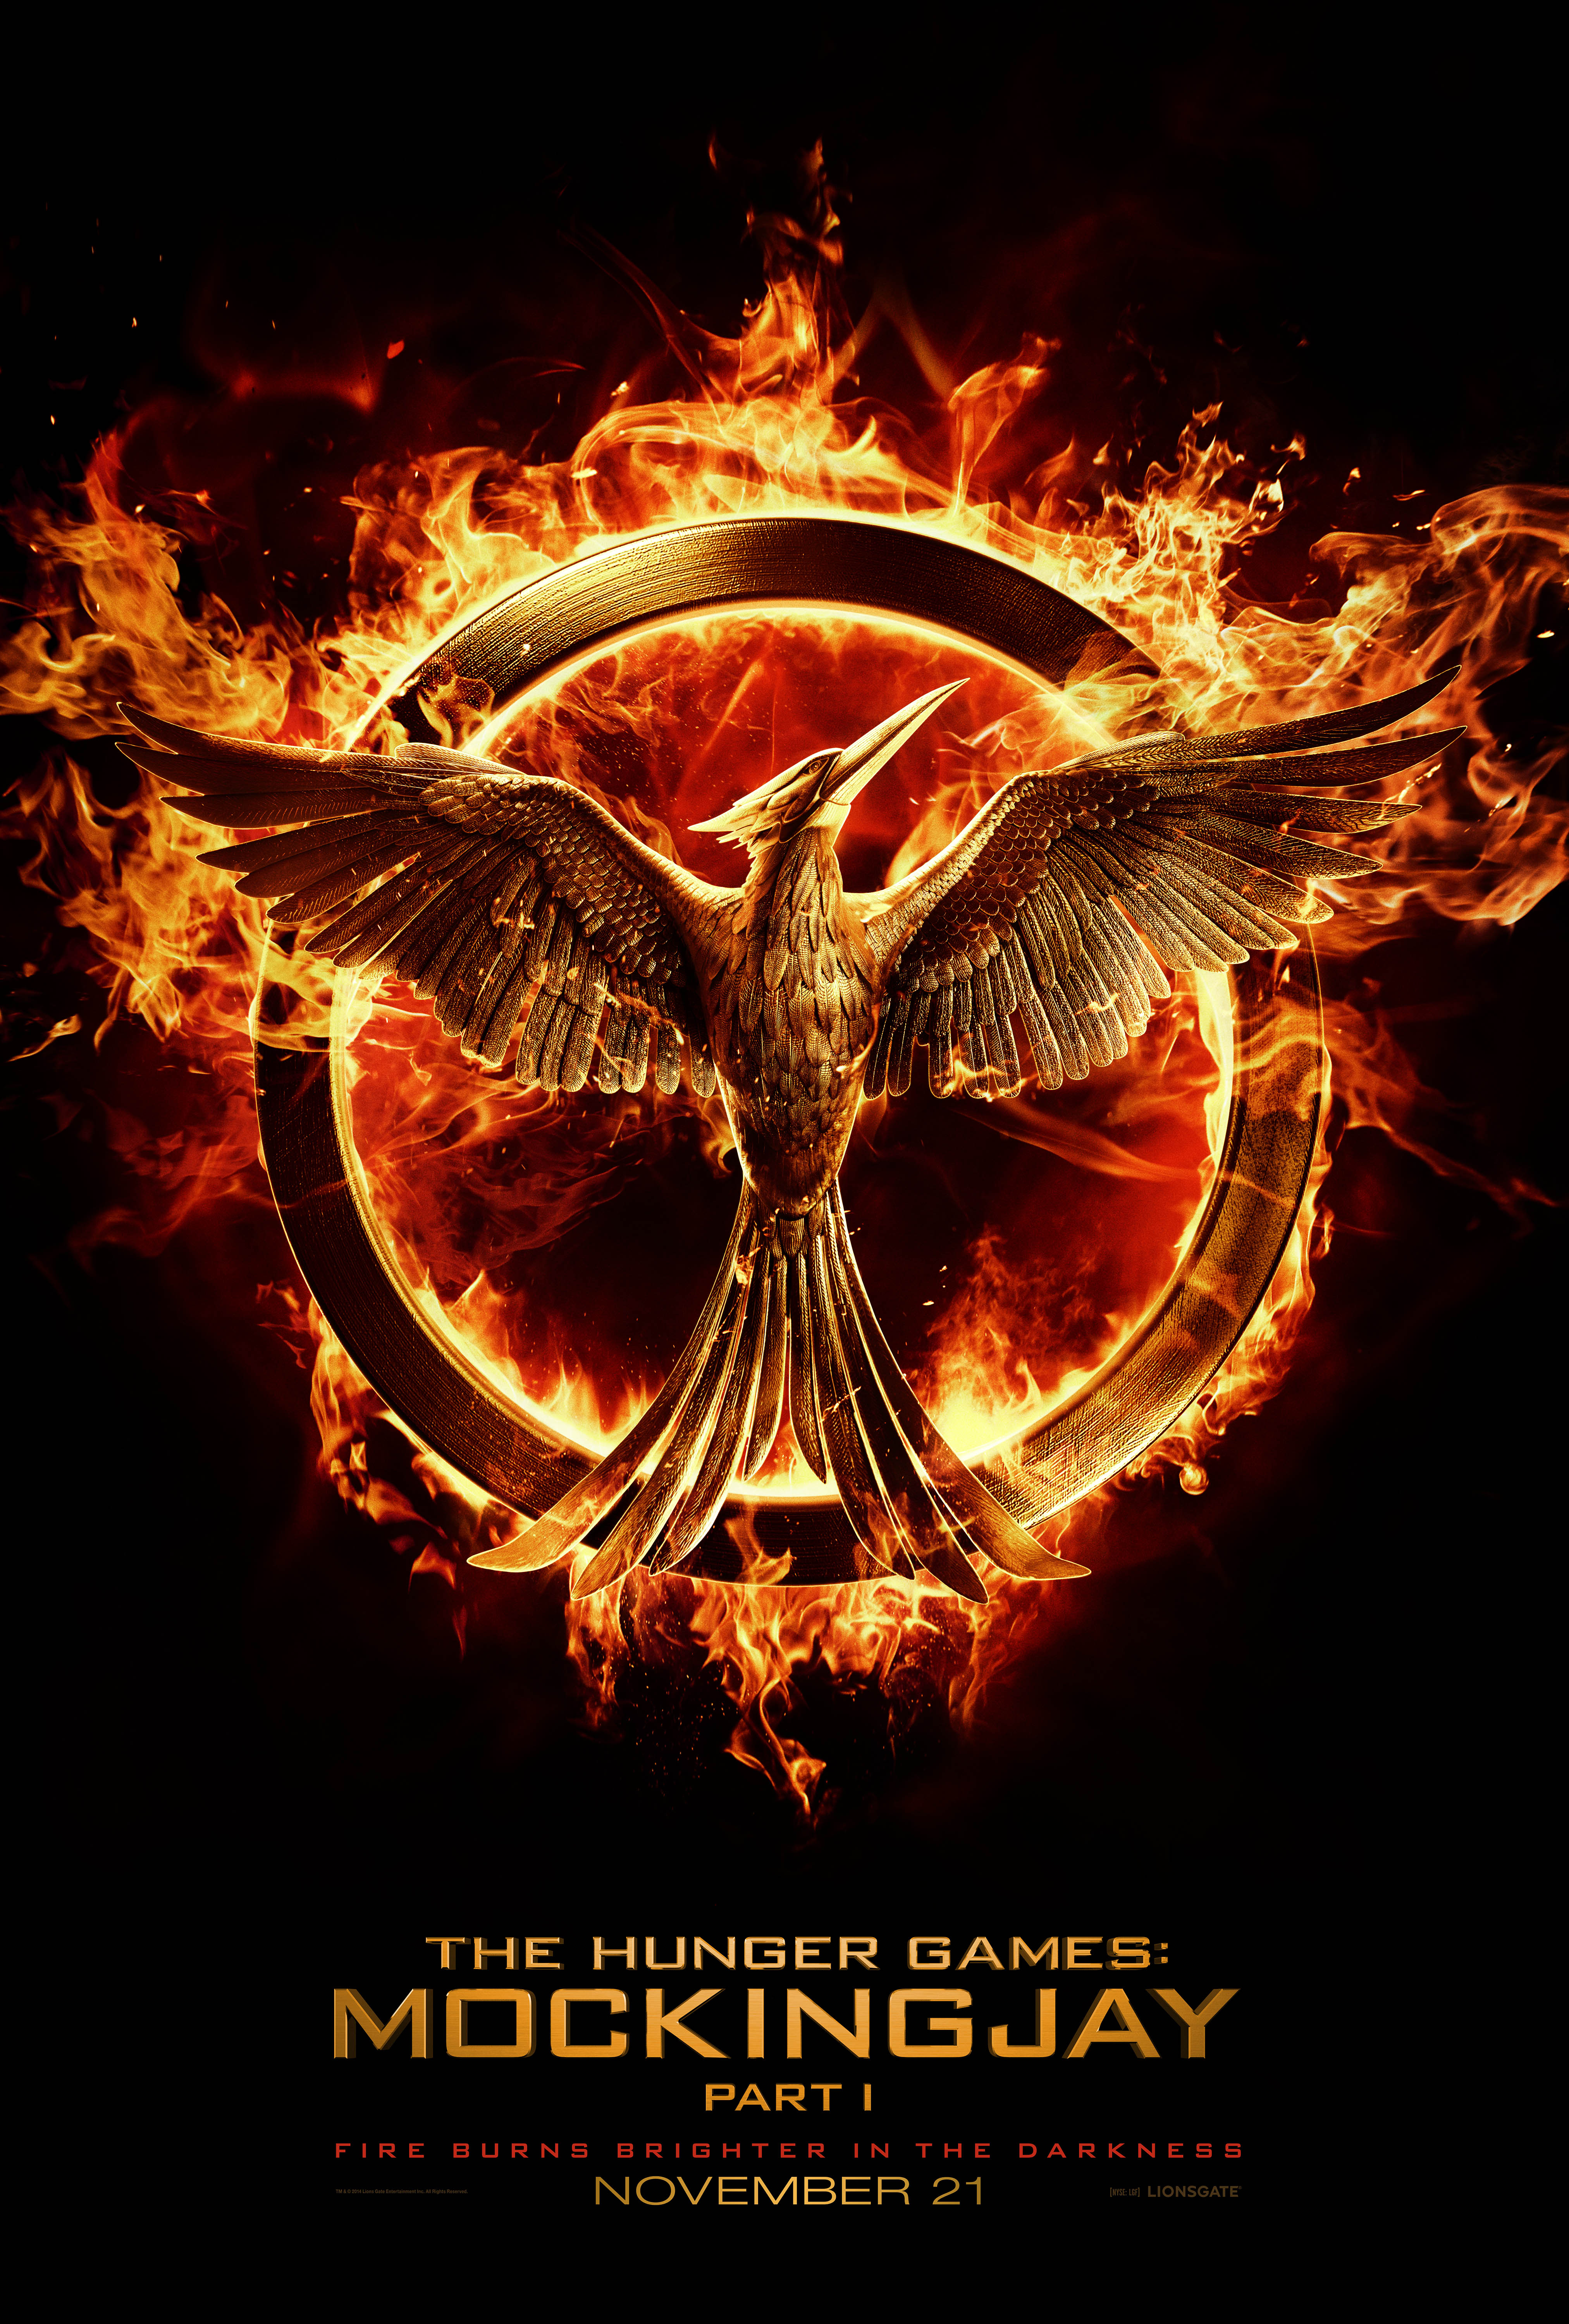 The Hunger Games Mockingjay Part 1 Exclusive First Look